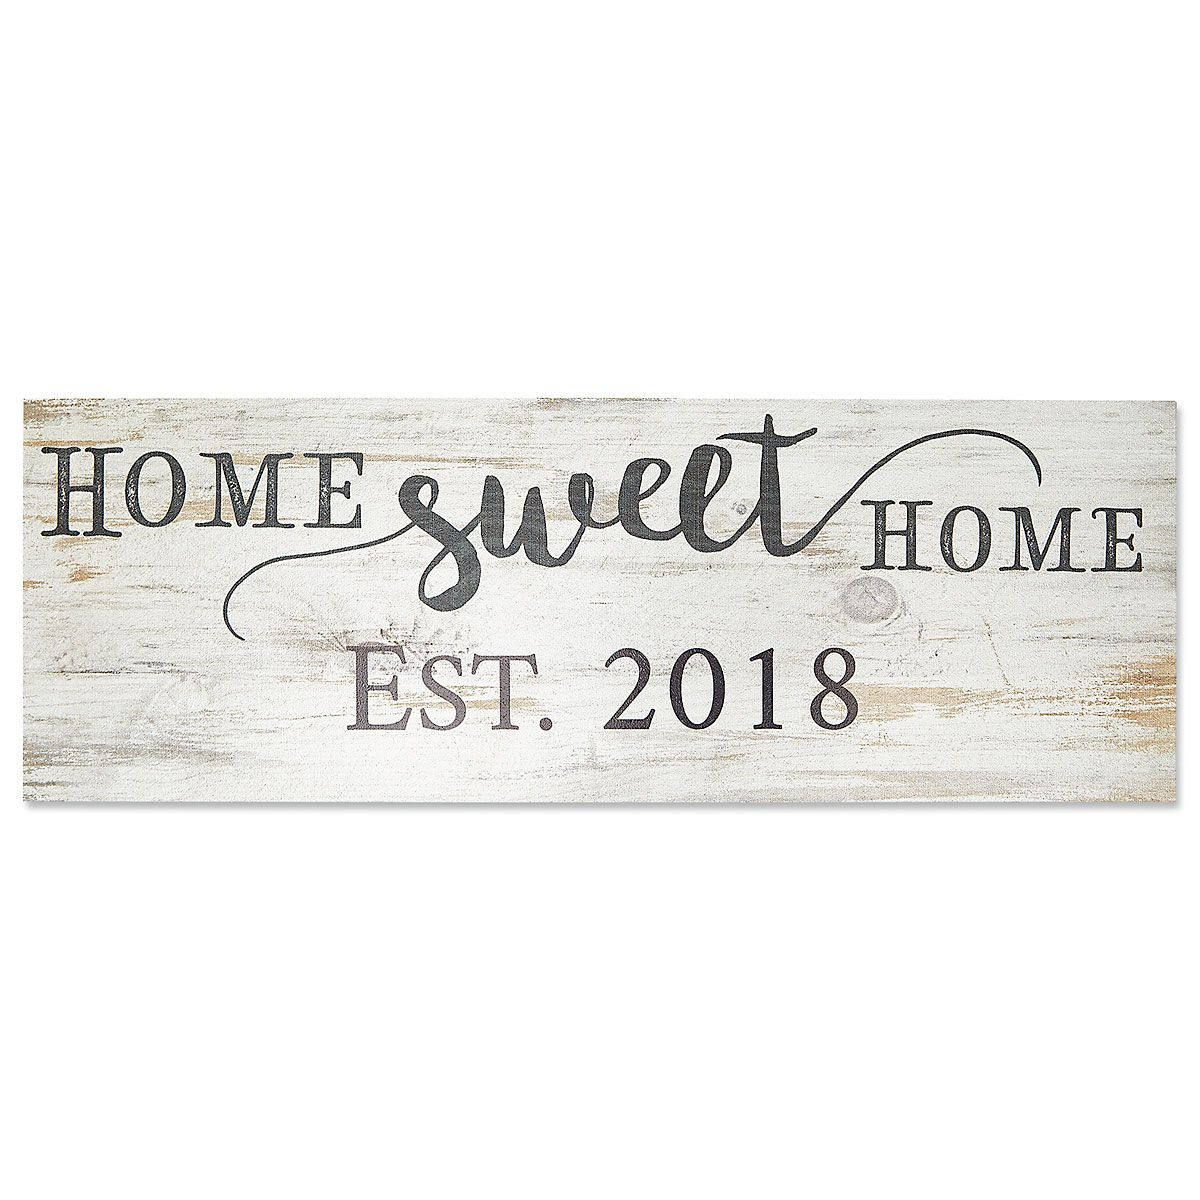 Personalized Established Home Sweet Home Plaque